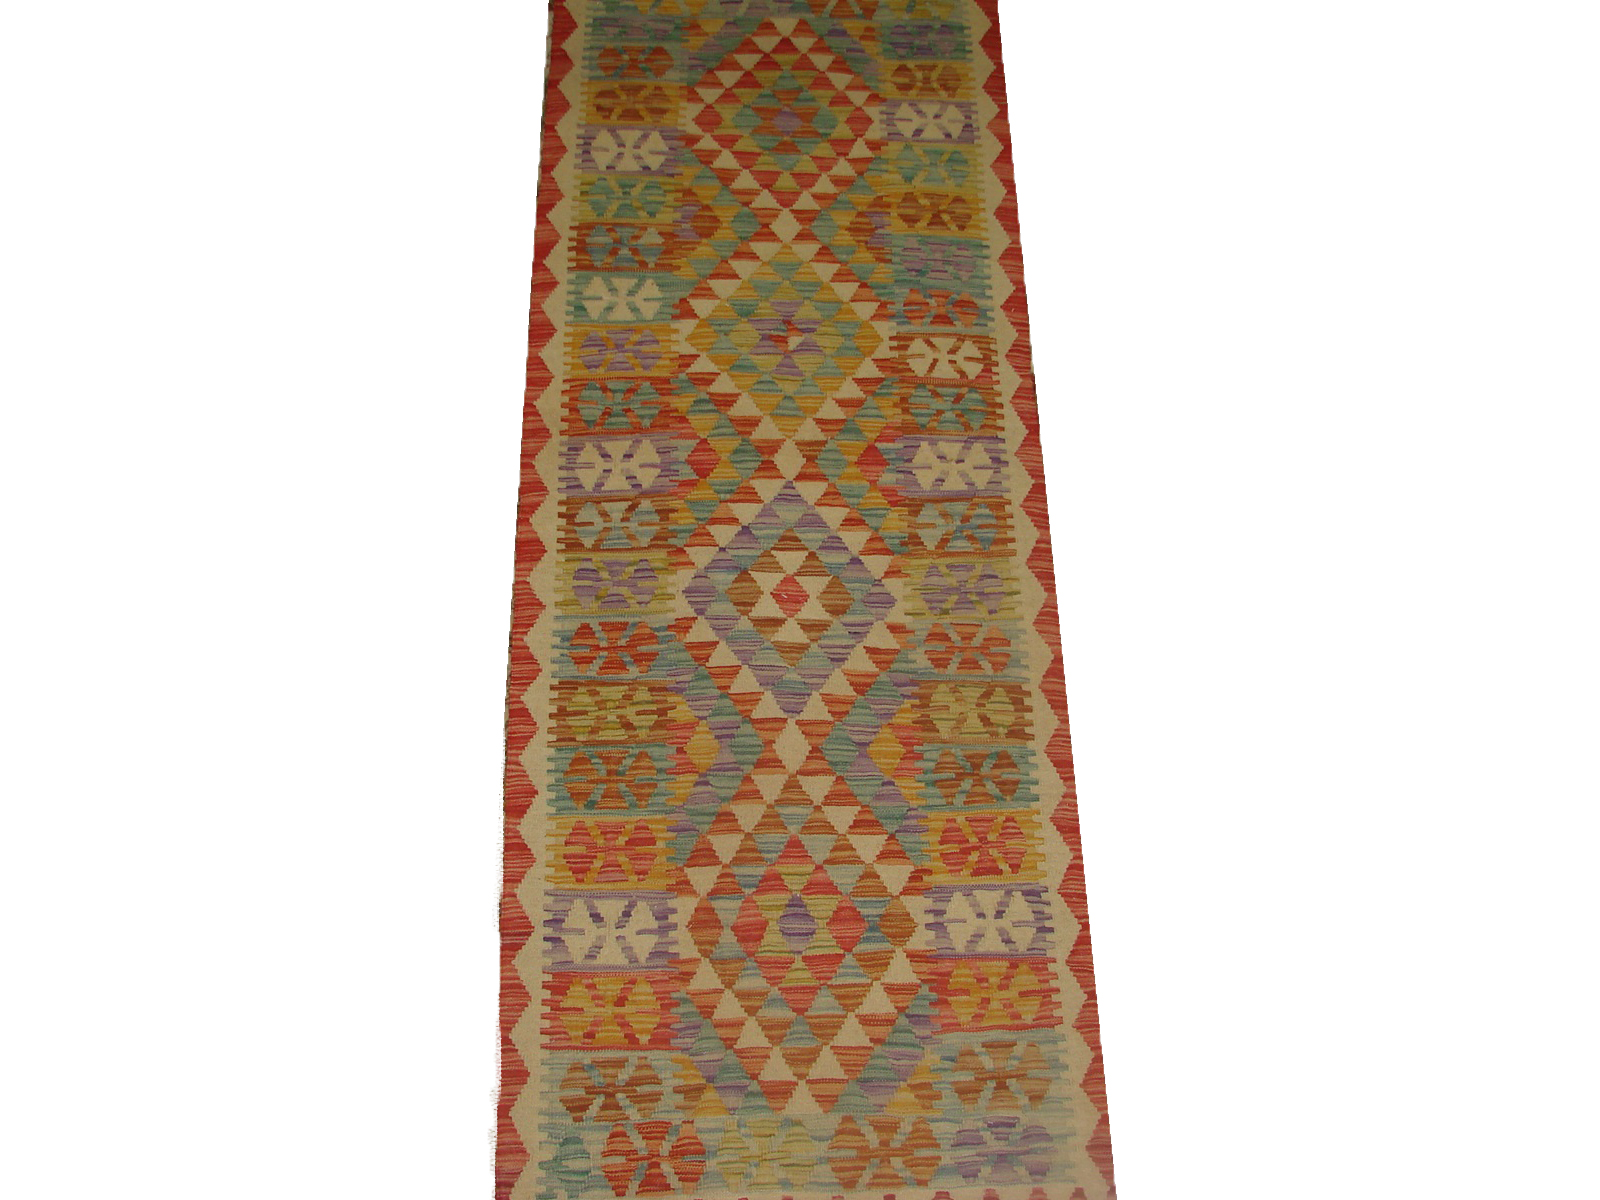 6 ft. Runner Flat Weave Hand Knotted Wool Area Rug - MR20872